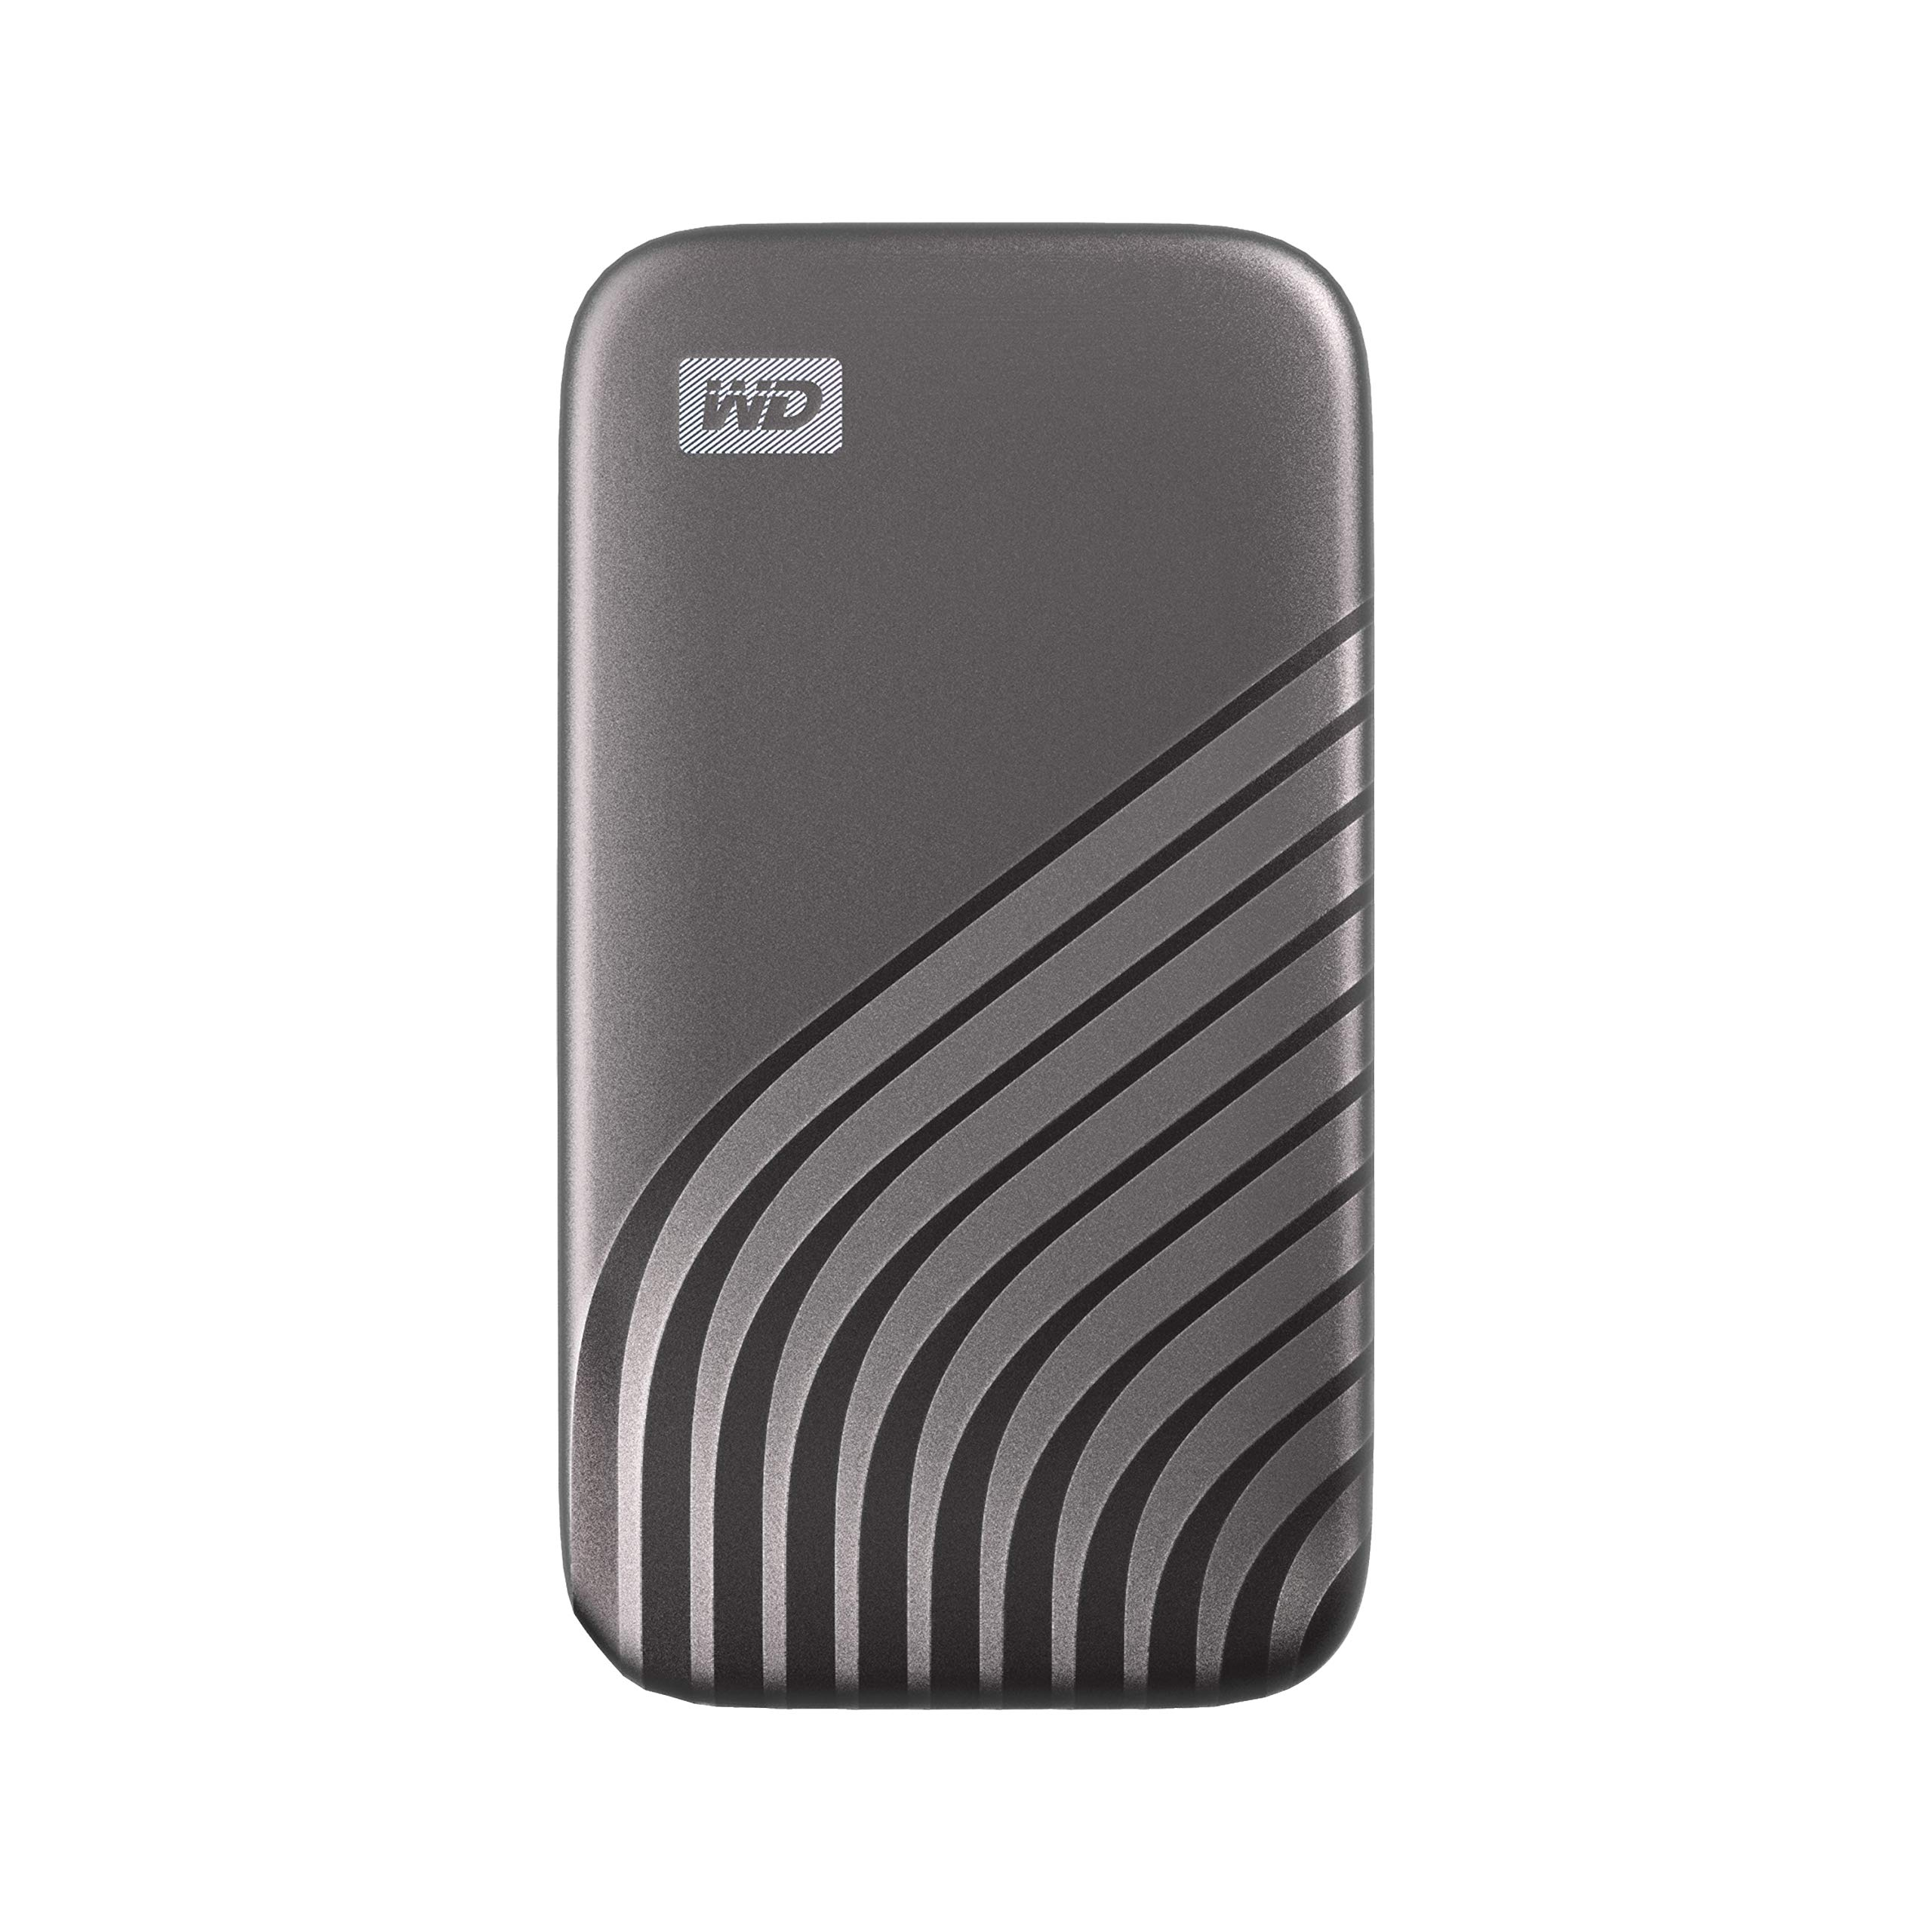 WD 1TB My Passport SSD External Portable Solid State Drive, Gray, Up to 1,050 MB/s, USB 3.2 Gen-2 and USB-C Compatible (USB-A for Older Systems) - WDBAGF0010BGY-WESN